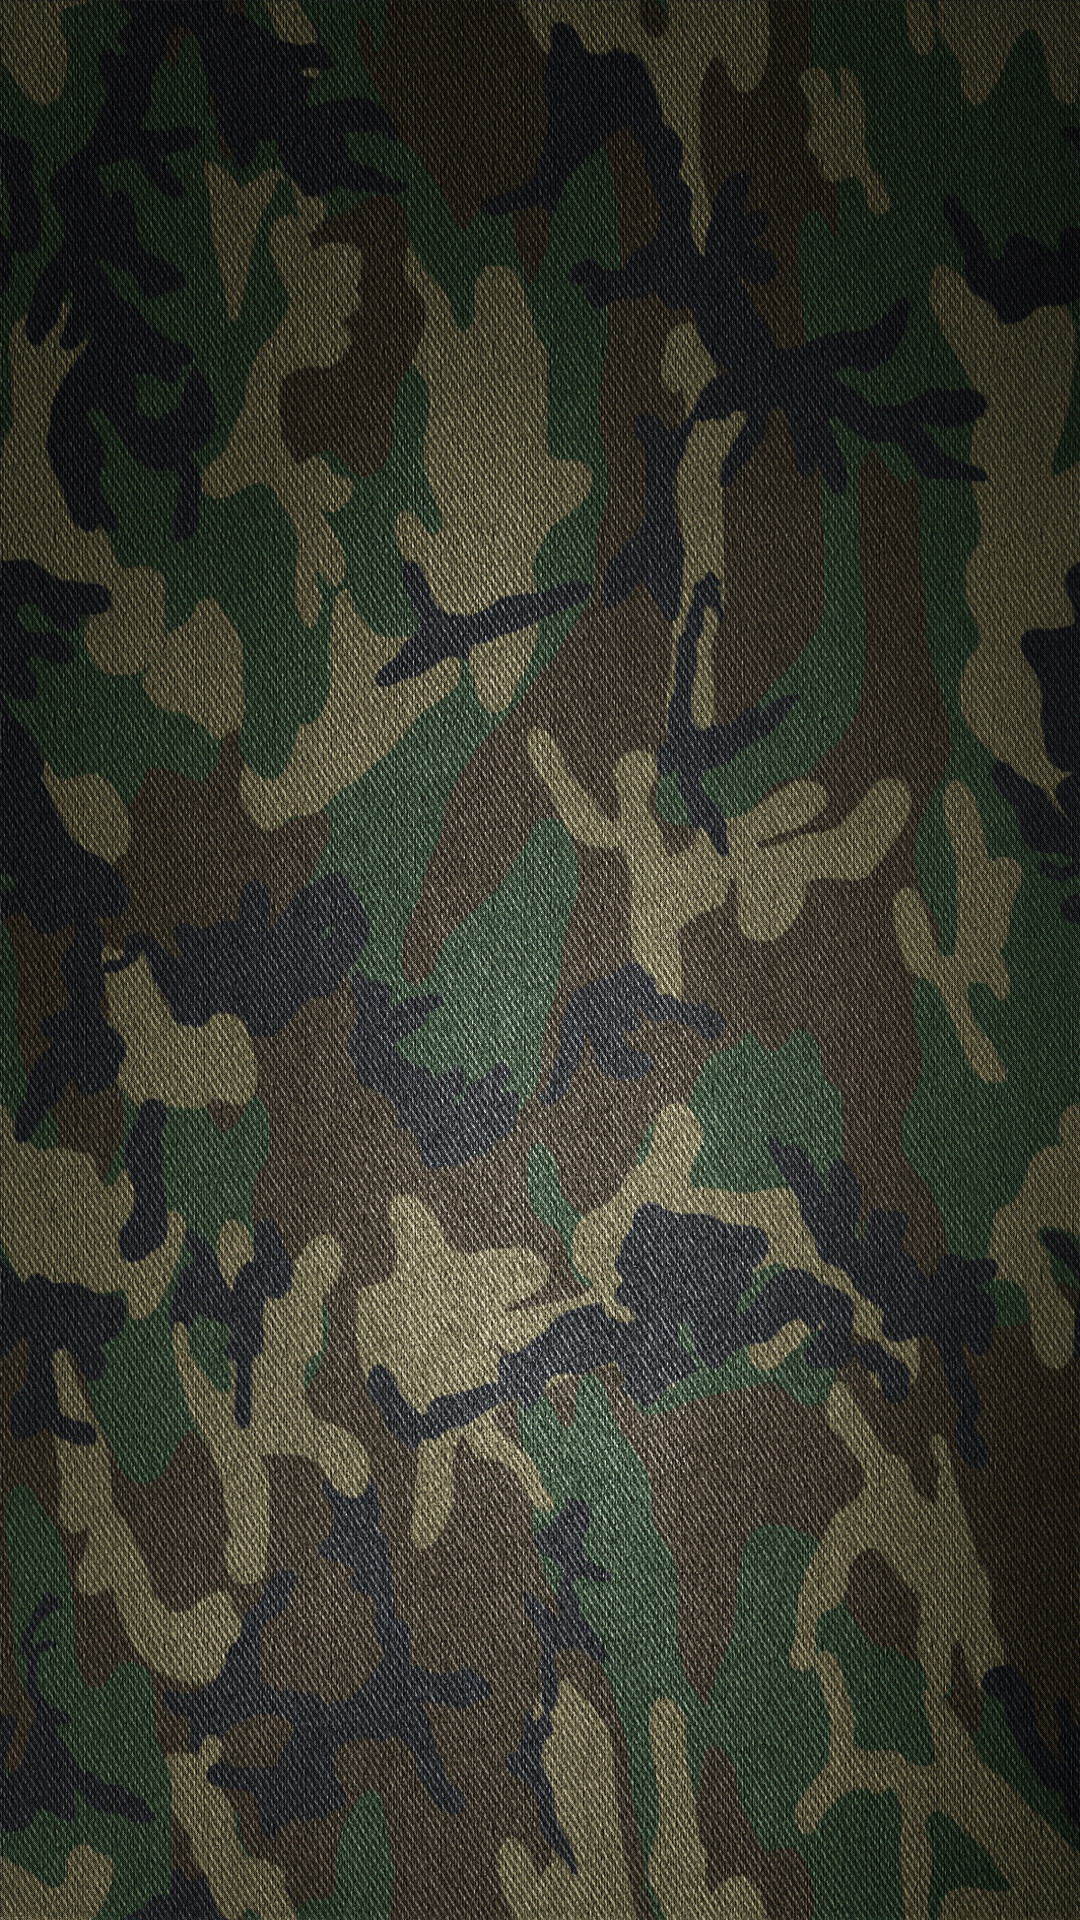 Camo Wallpapers Inspirational Camouflage Iphone Wallpaper - Phone Wallpaper Camo - HD Wallpaper